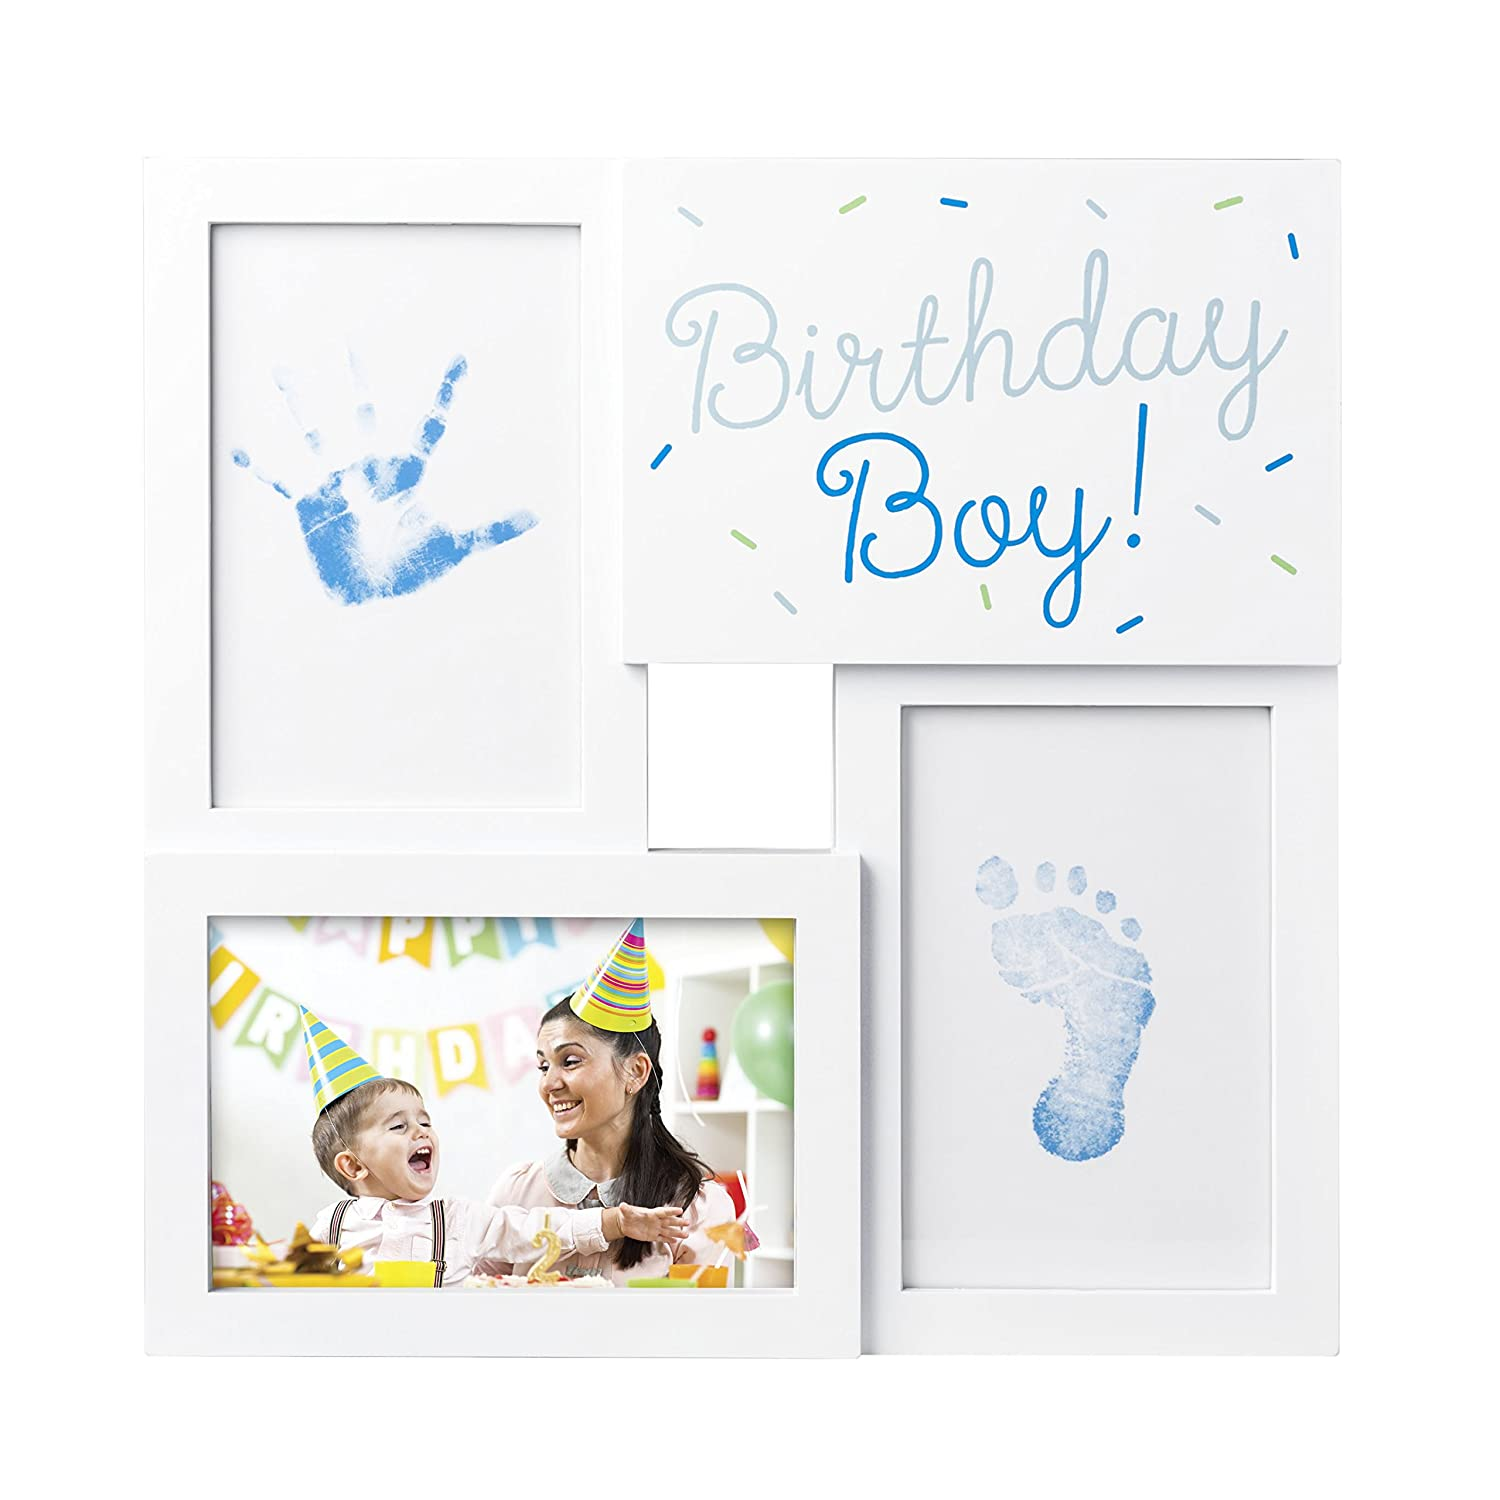 Tiny Ideas My First Birthday Print Collage Photo Frame with Included Ink Pad and Imprint Cards, Pink Pearhead 96236